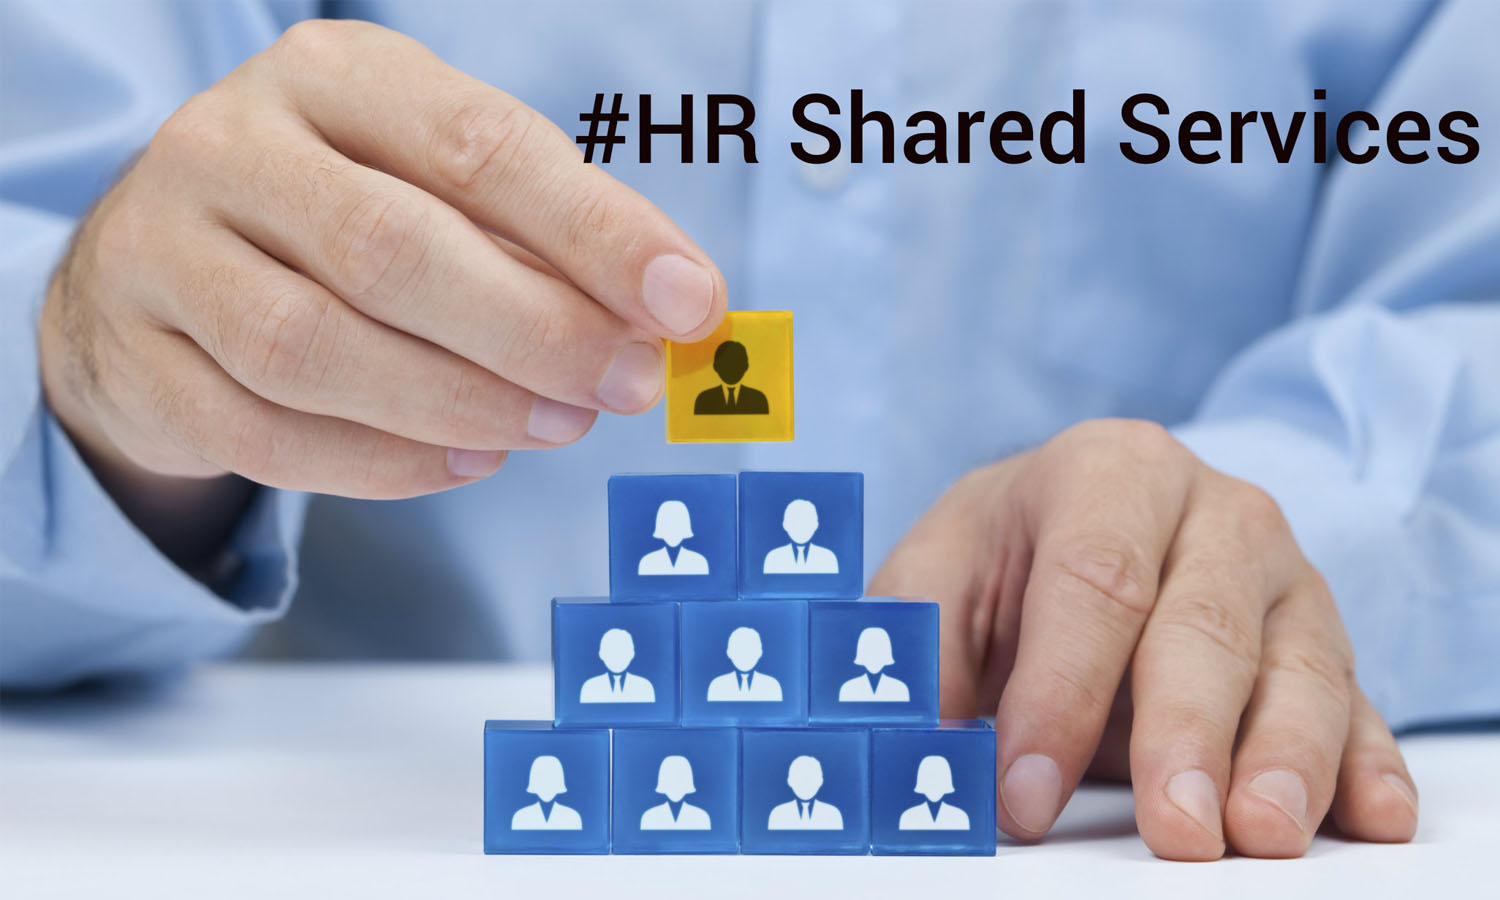 Preferences and Issues of HRshared services